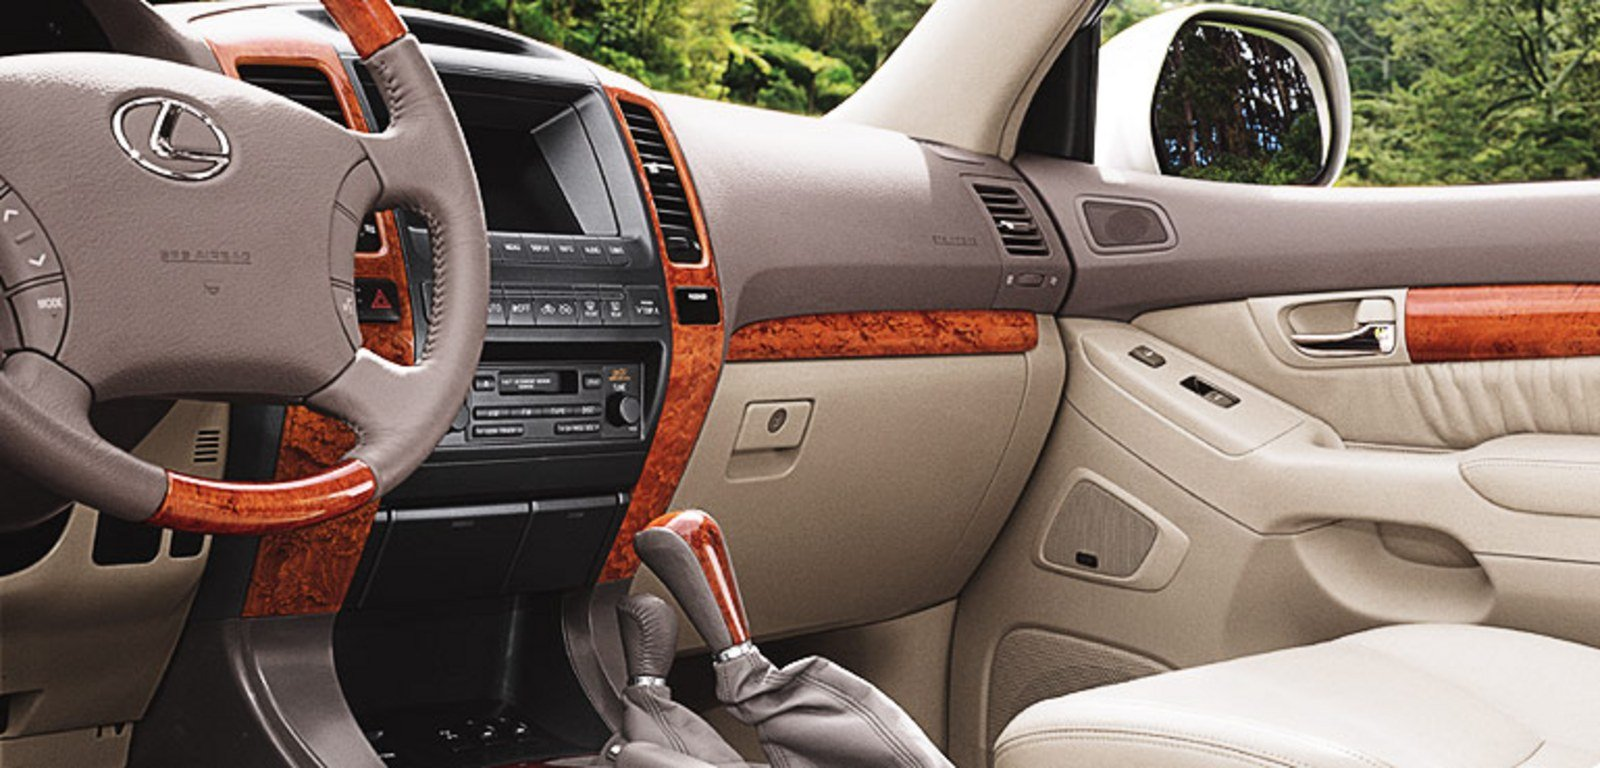 2006 lexus gx 470 review top speed. Black Bedroom Furniture Sets. Home Design Ideas